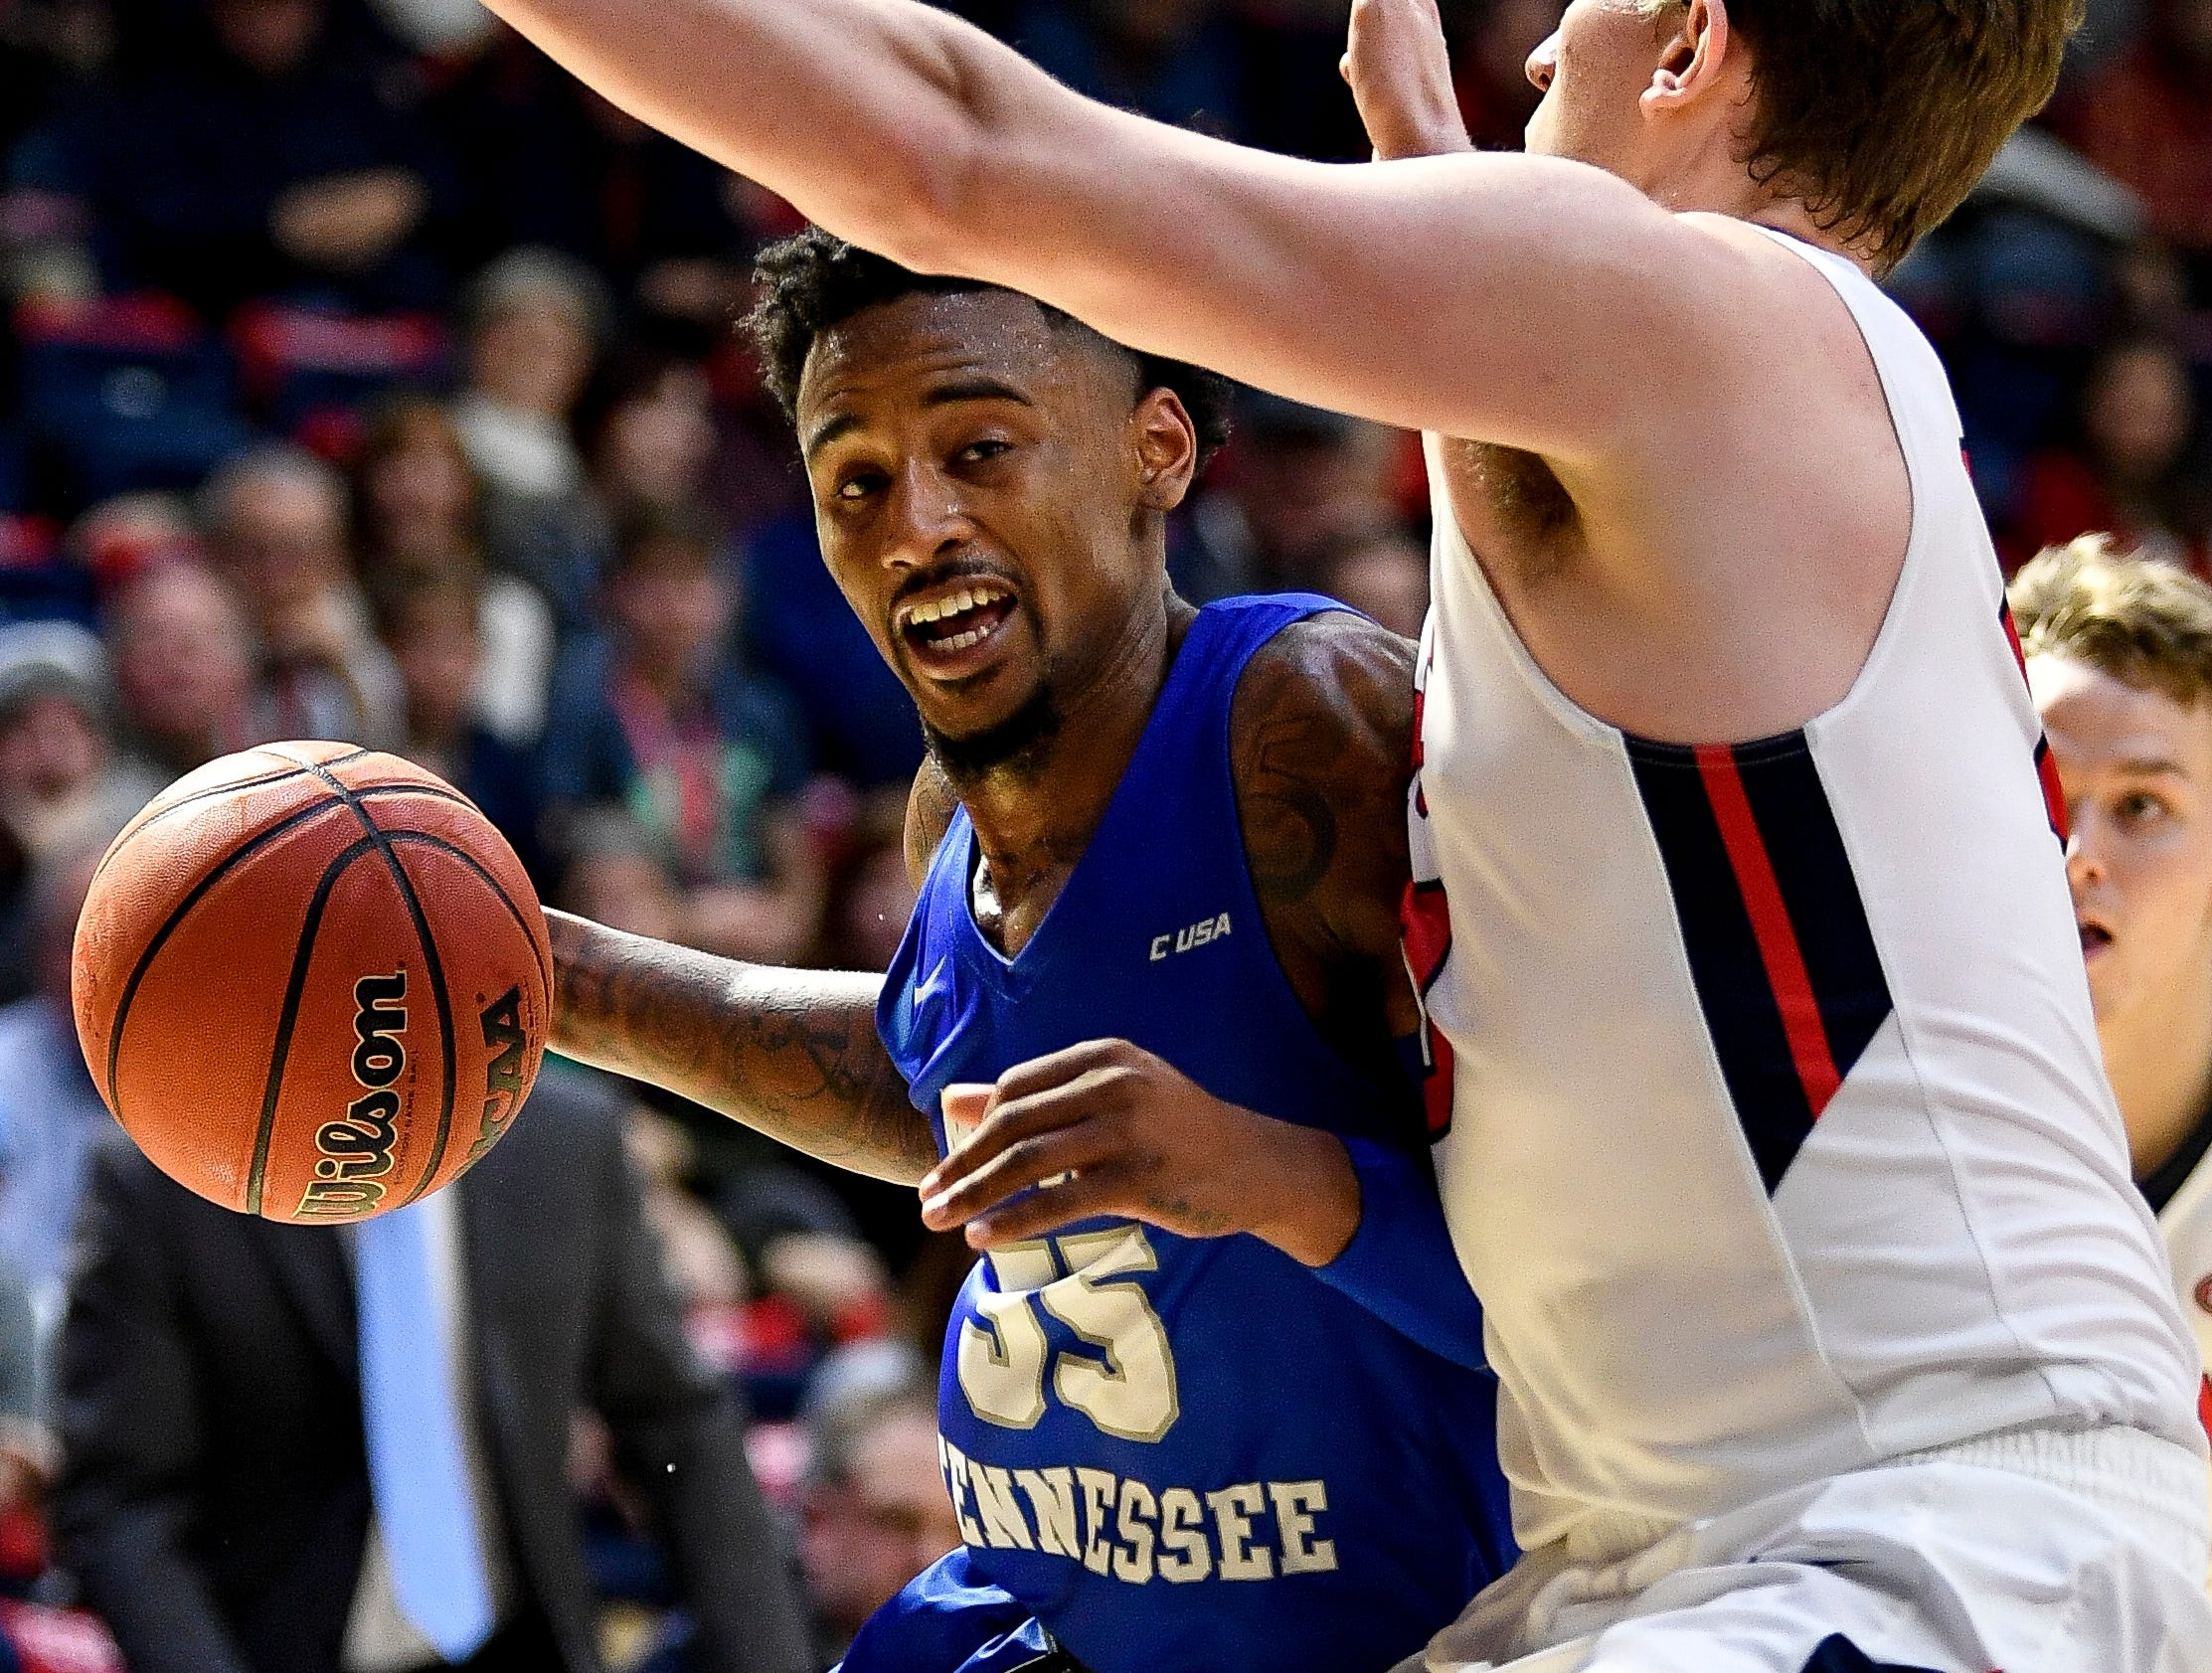 MTSU guard Antonio Green (55) is guarded by Belmont forward Caleb Hollander (10) during the second half at the Curb Event Center Arena in Nashville, Tenn., Monday, Nov. 12, 2018.